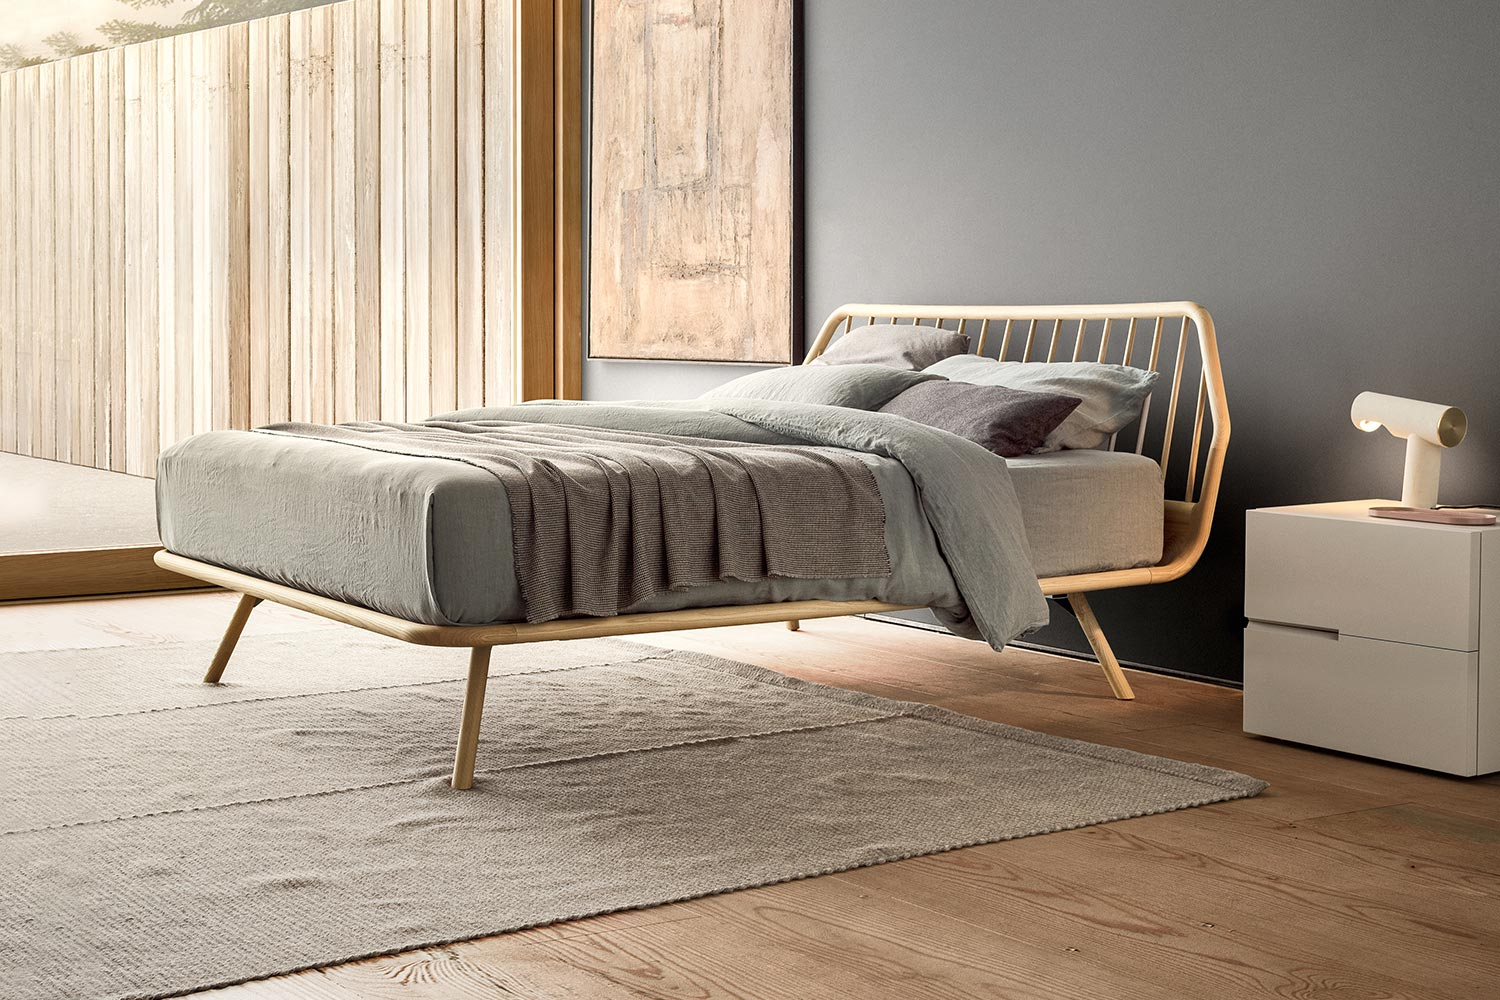 New Beds to Help You Achieve Great Sleep